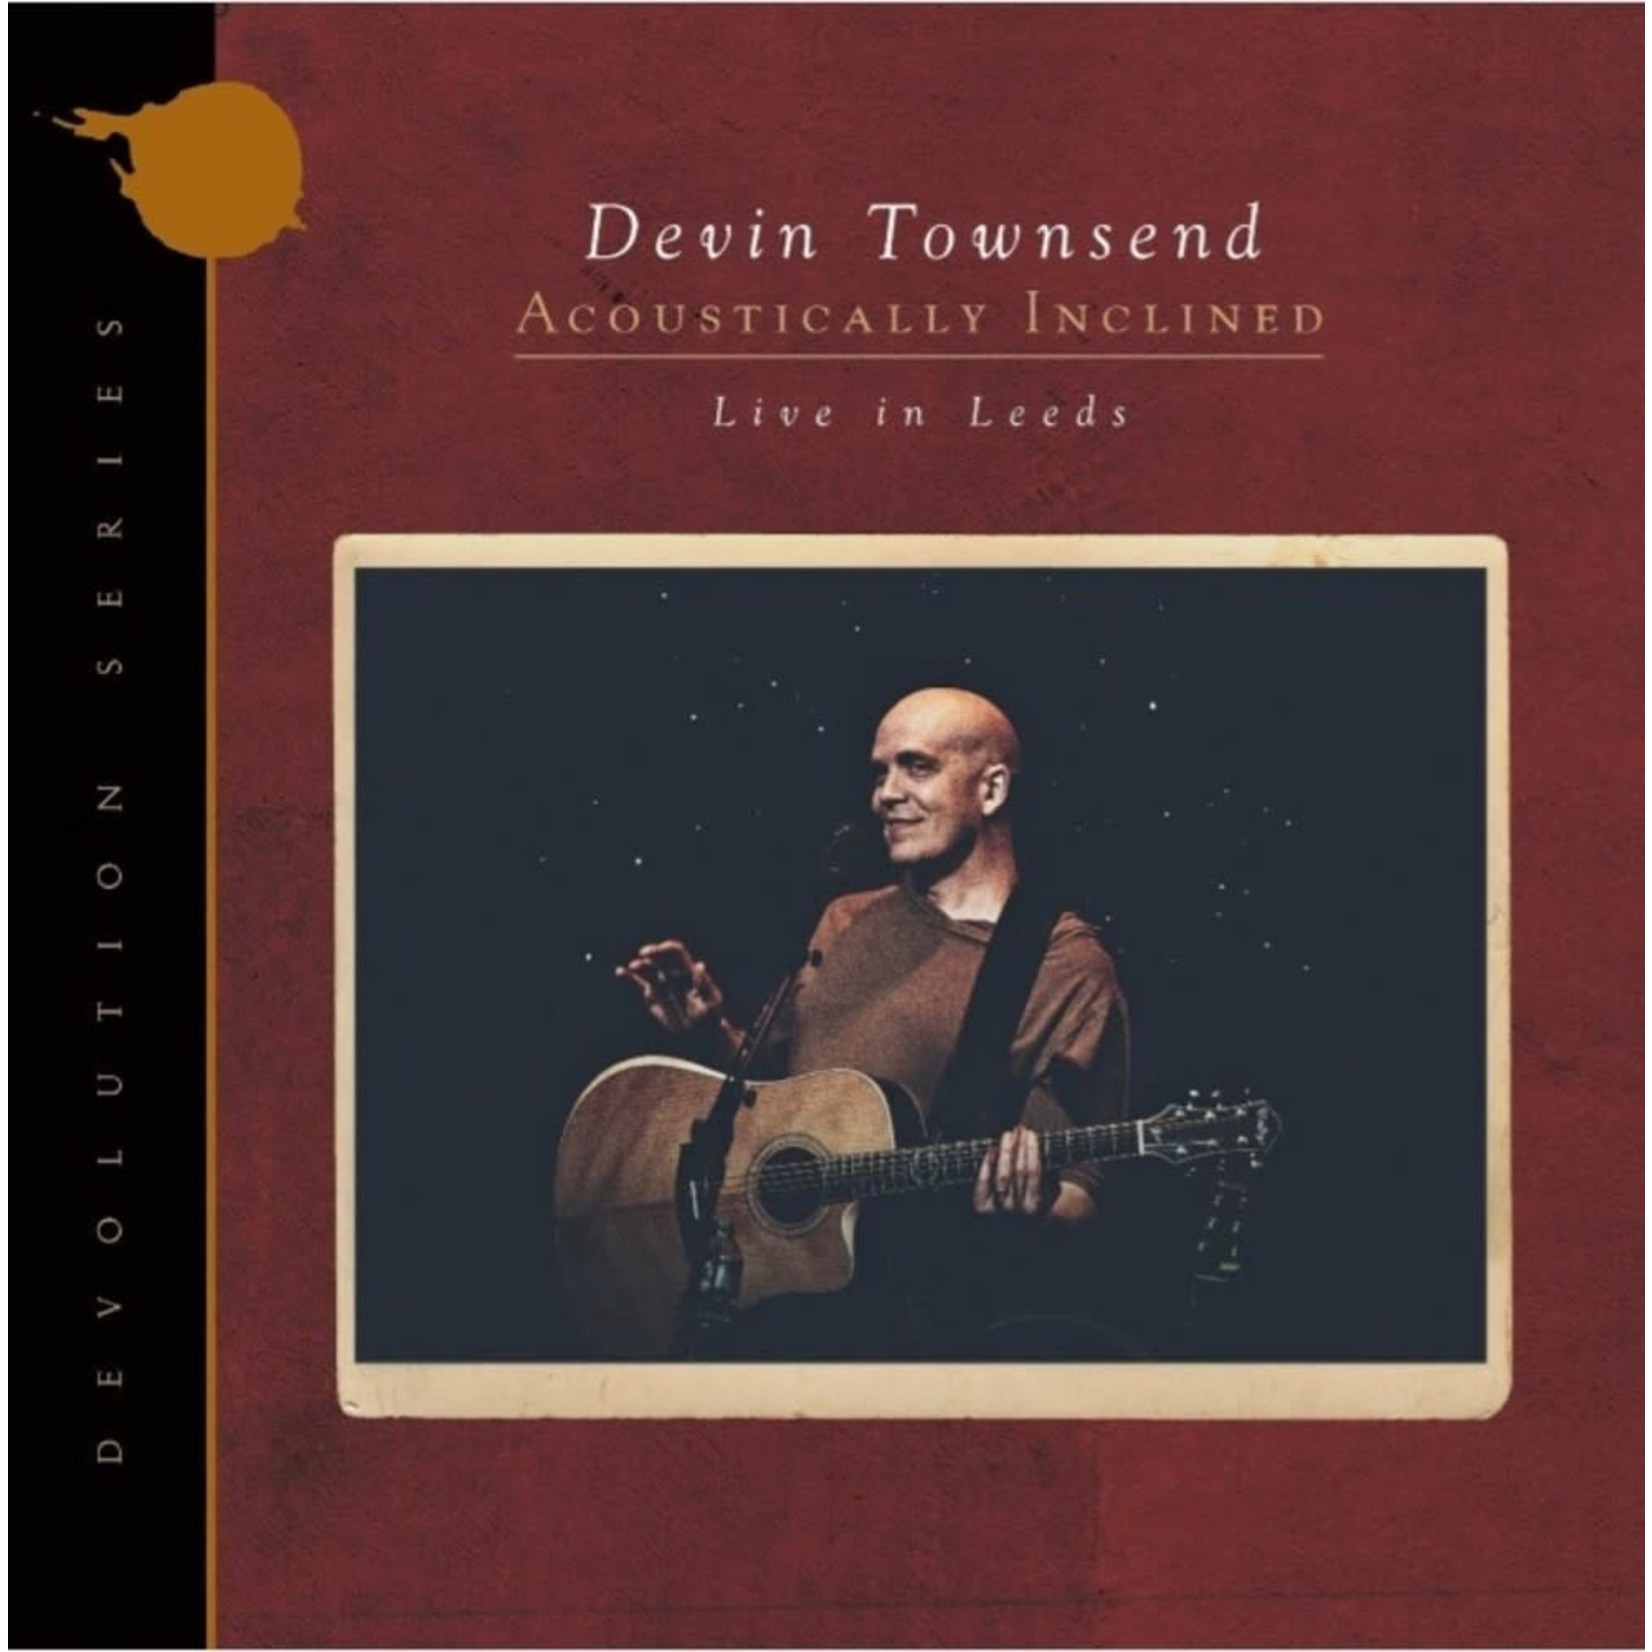 DEVIN TOWNSEND ACOUSTICALLY INCLINED LIVE AT LEEDS  LTD. EDITION  RUBY VINYL